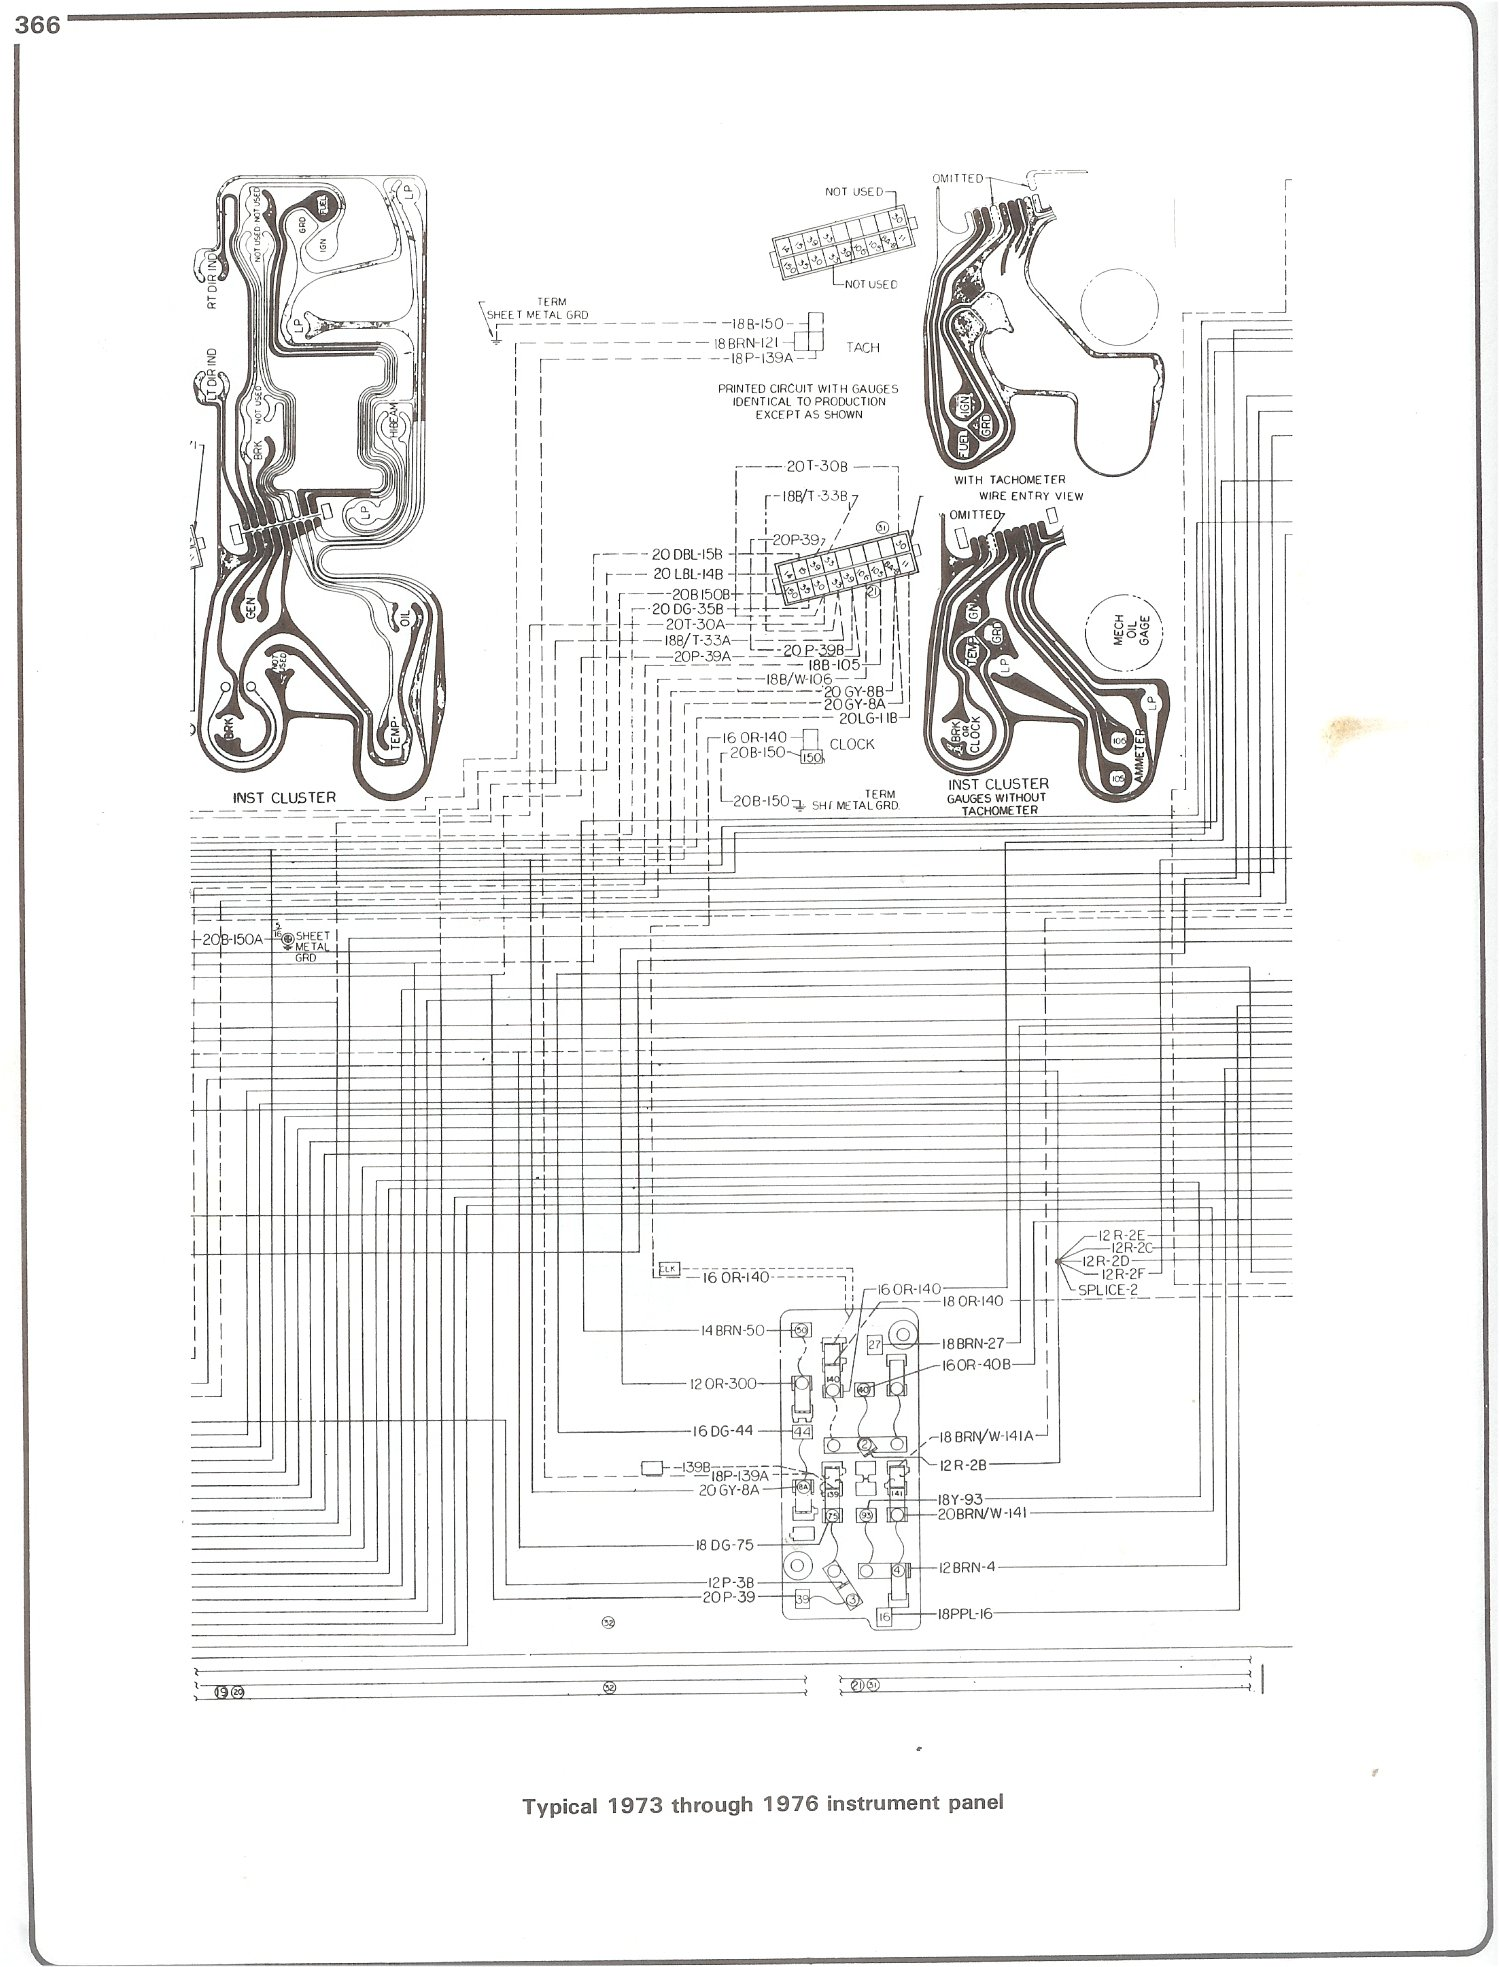 86 Chevy Truck Wiring Diagram - Wiring Diagram Blog Data on chevy brake light switch wiring diagram, chevy voltage regulator wiring diagram, chevy dome light wiring diagram, chevy fuel pump wiring diagram, chevy fuel gauge wiring diagram, chevy headlight wiring diagram, chevy neutral safety switch wiring diagram, chevy engine wiring diagram, chevy starter wiring diagram, chevy ignition coil wiring diagram, chevy instrument cluster wiring diagram, chevy transfer case wiring diagram, chevy alternator wiring diagram, chevy ballast resistor wiring diagram, chevy fuel sender wiring diagram, chevy backup light wiring diagram, chevy dimmer switch wiring diagram, chevy distributor wiring diagram, chevy horn relay wiring diagram, chevy wiper switch wiring diagram,